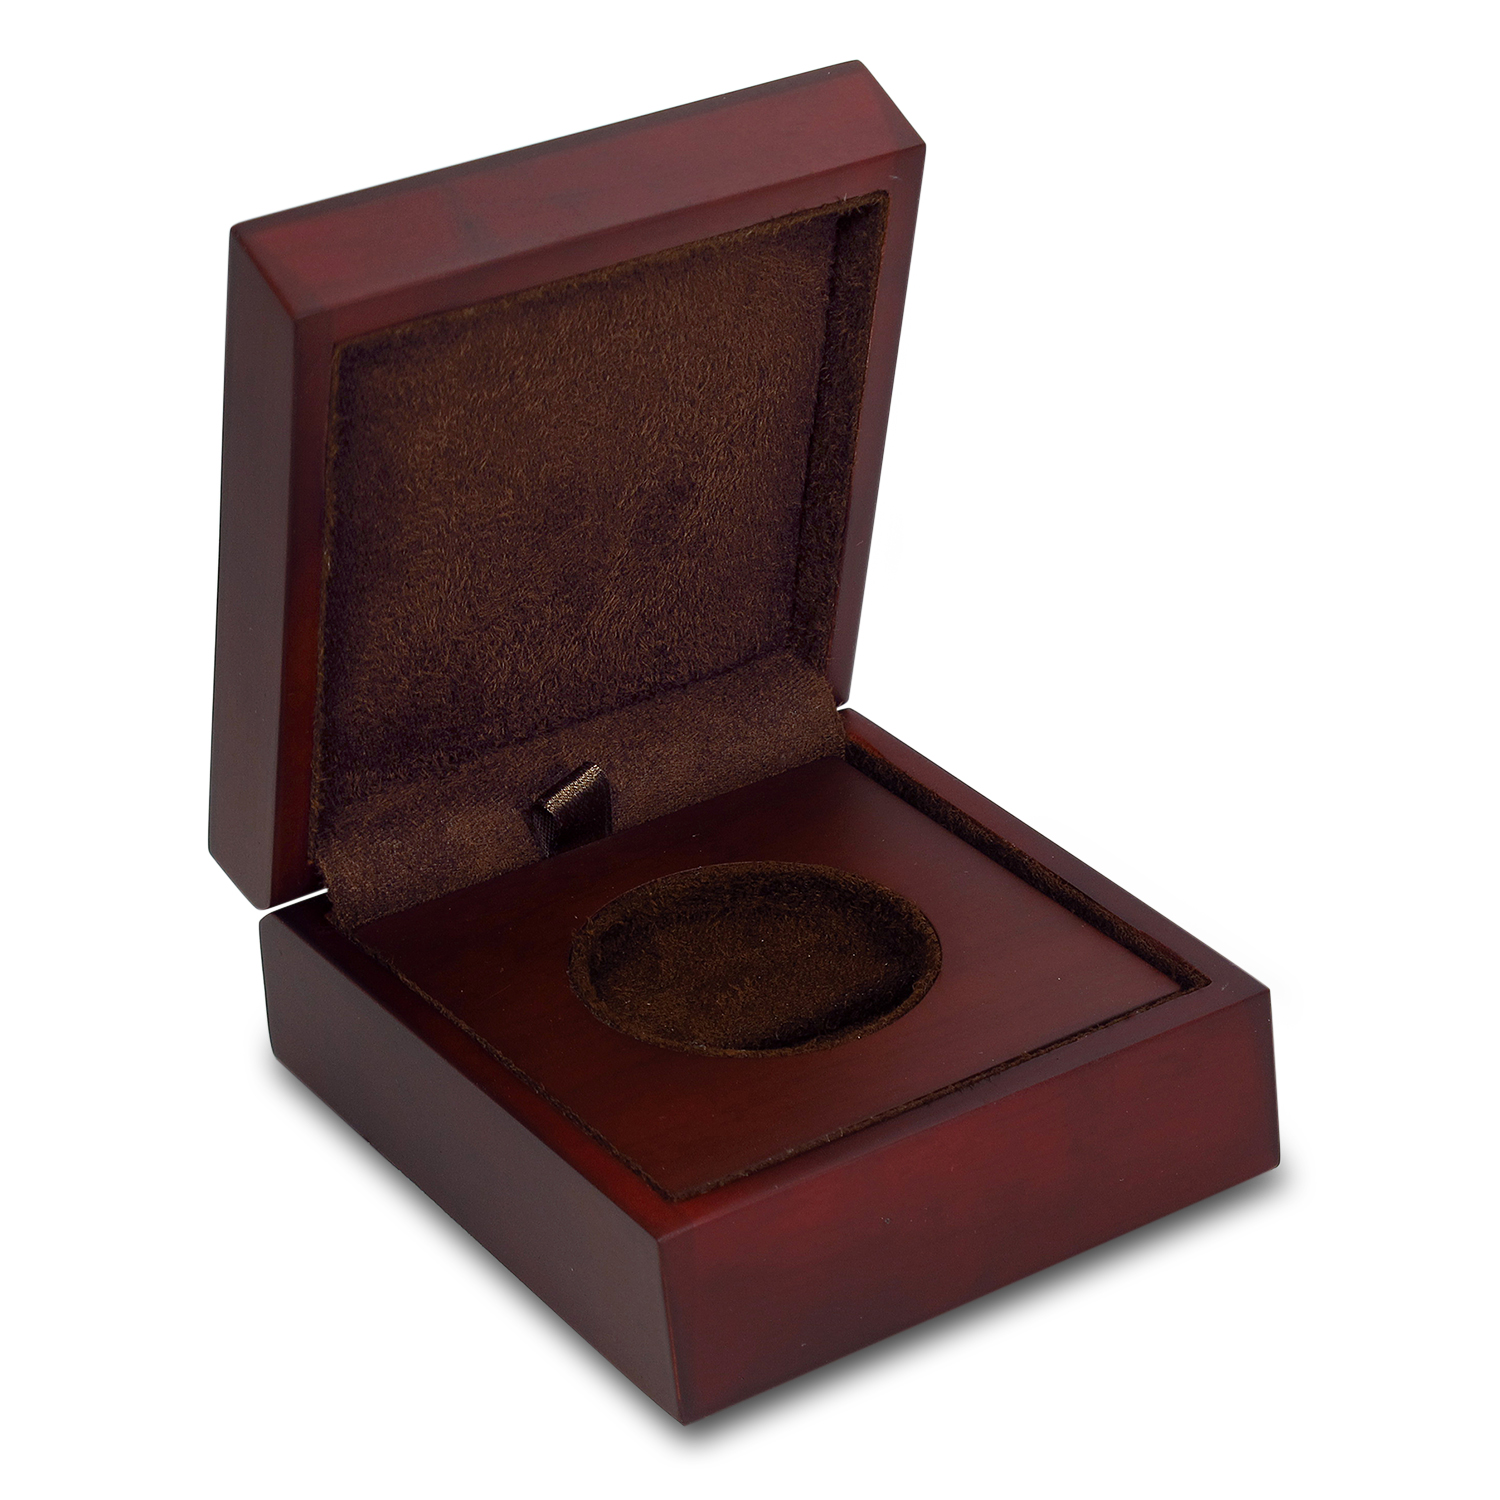 APMEX Wood Gift Box - 2 oz Perth Mint Gold Coin